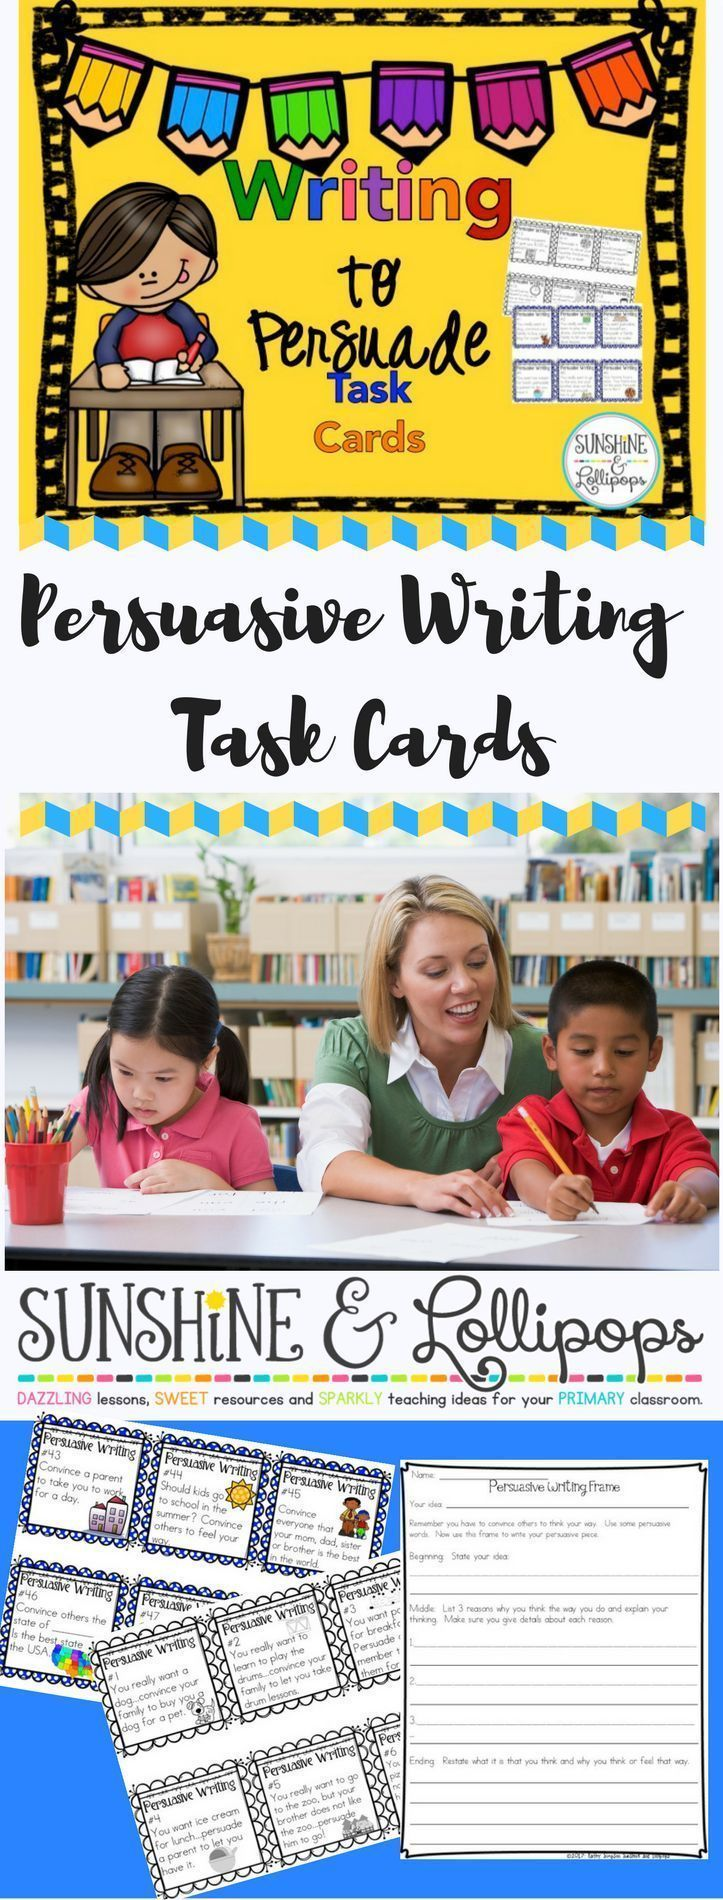 Your kiddos will love these persuasive writing task cards with prompts to make writing fun. There are 60 cards with ideas for writing to persuade. Black and White copies allow the cards to be used with Interactive Writing Notebooks.